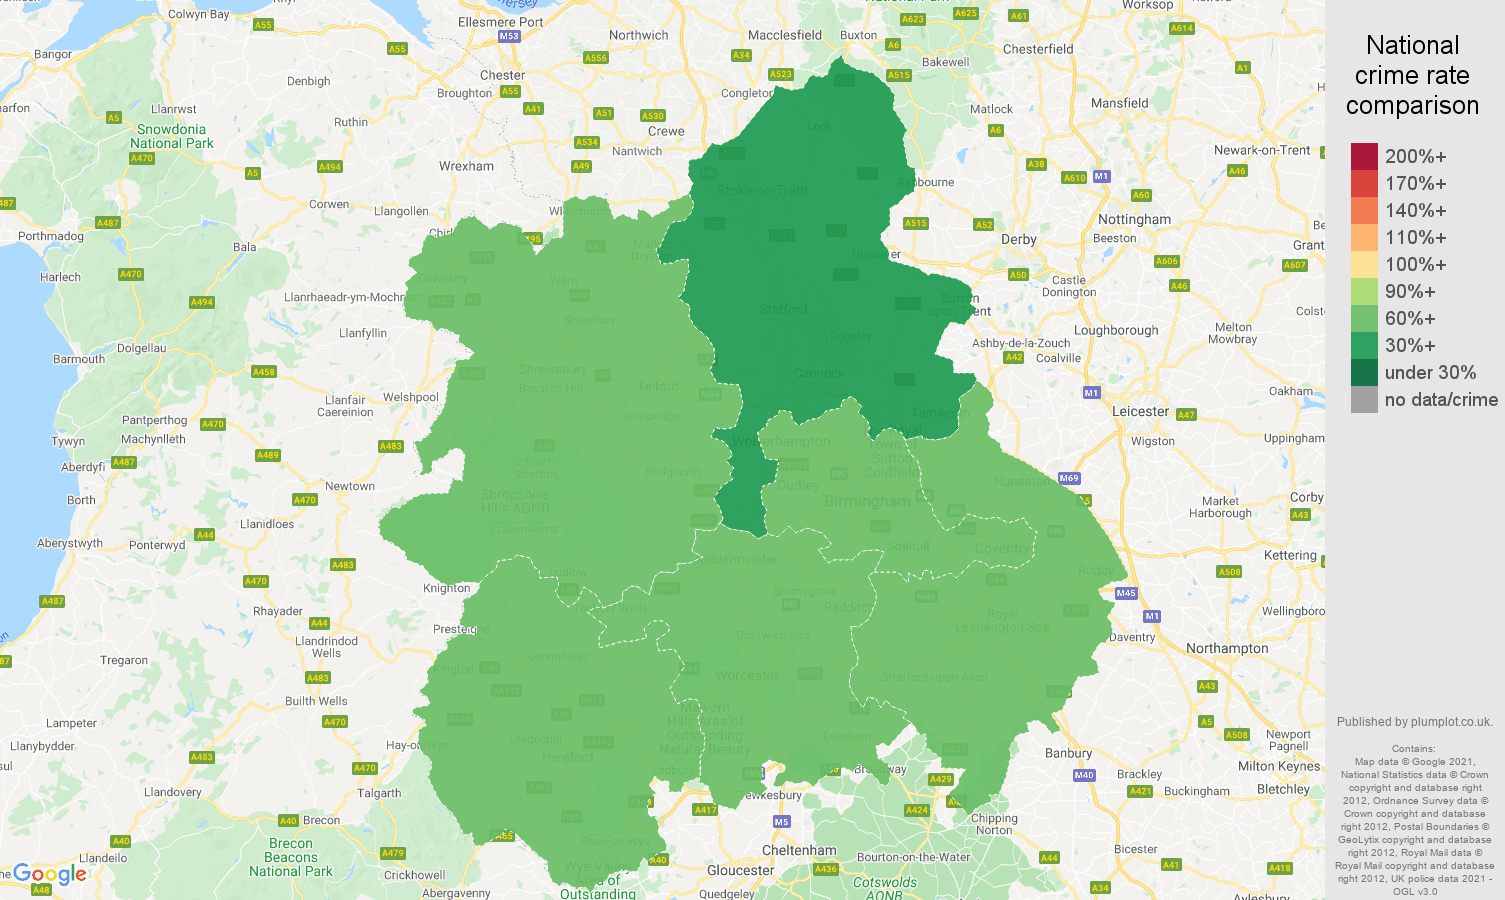 West Midlands drugs crime rate comparison map